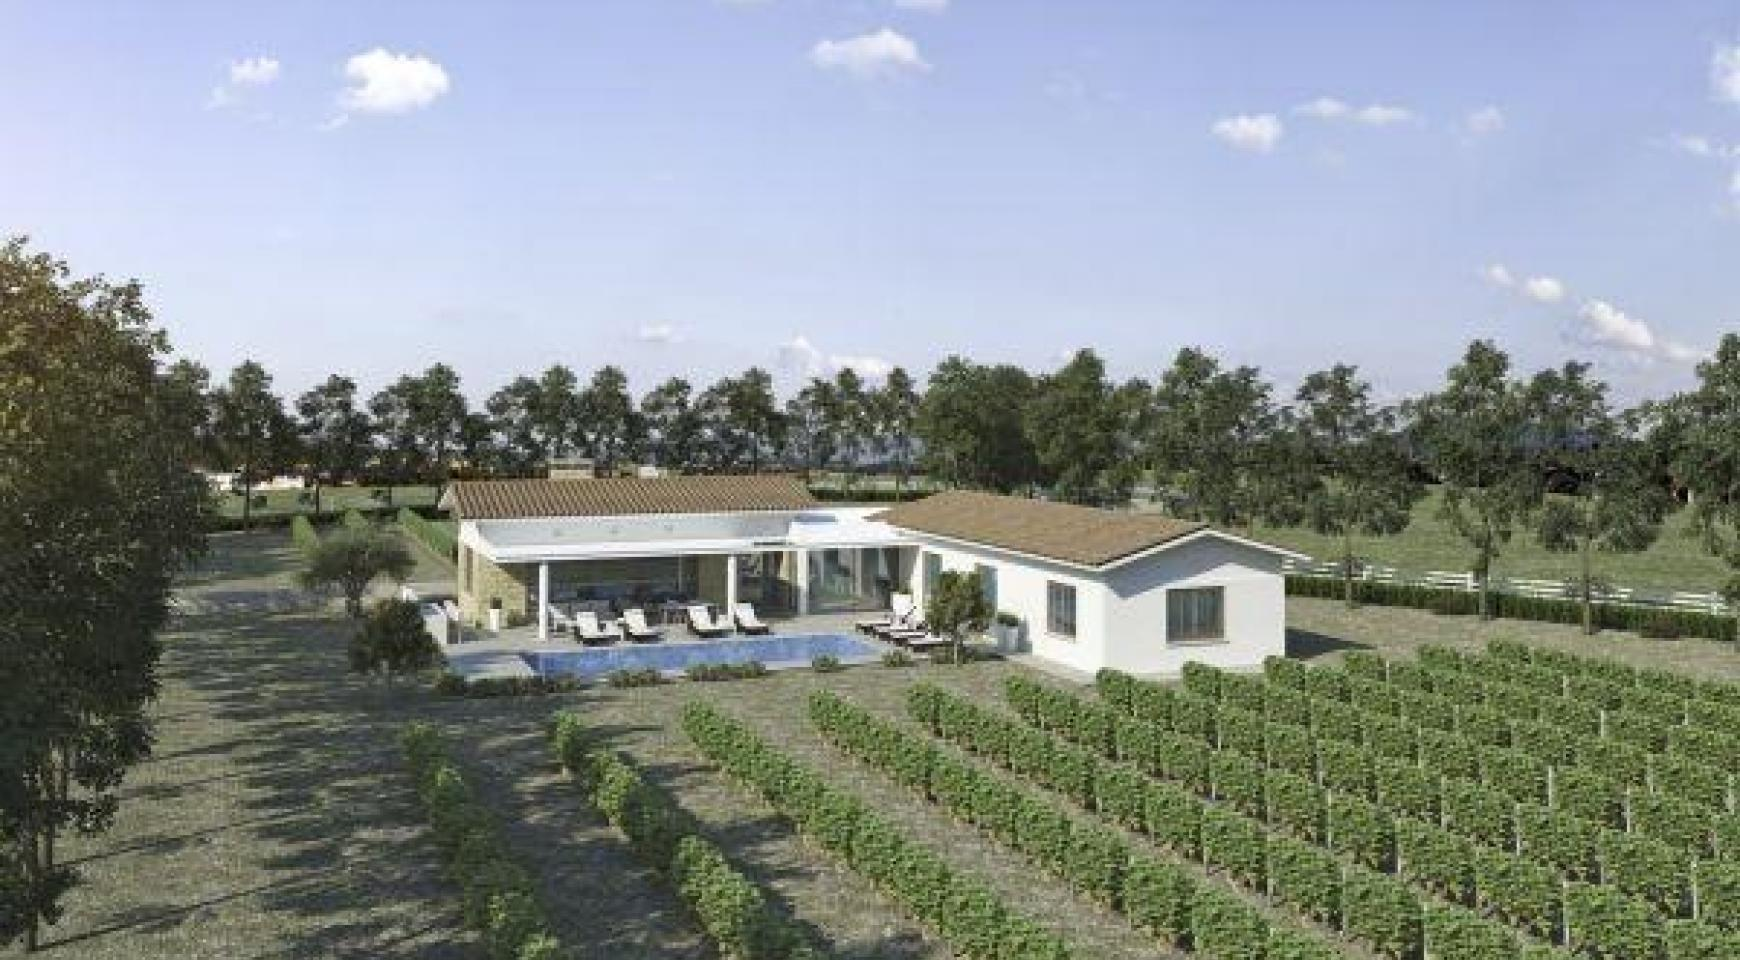 New 3 Bedroom Bungalow on a Large Plot near Latsi - 4